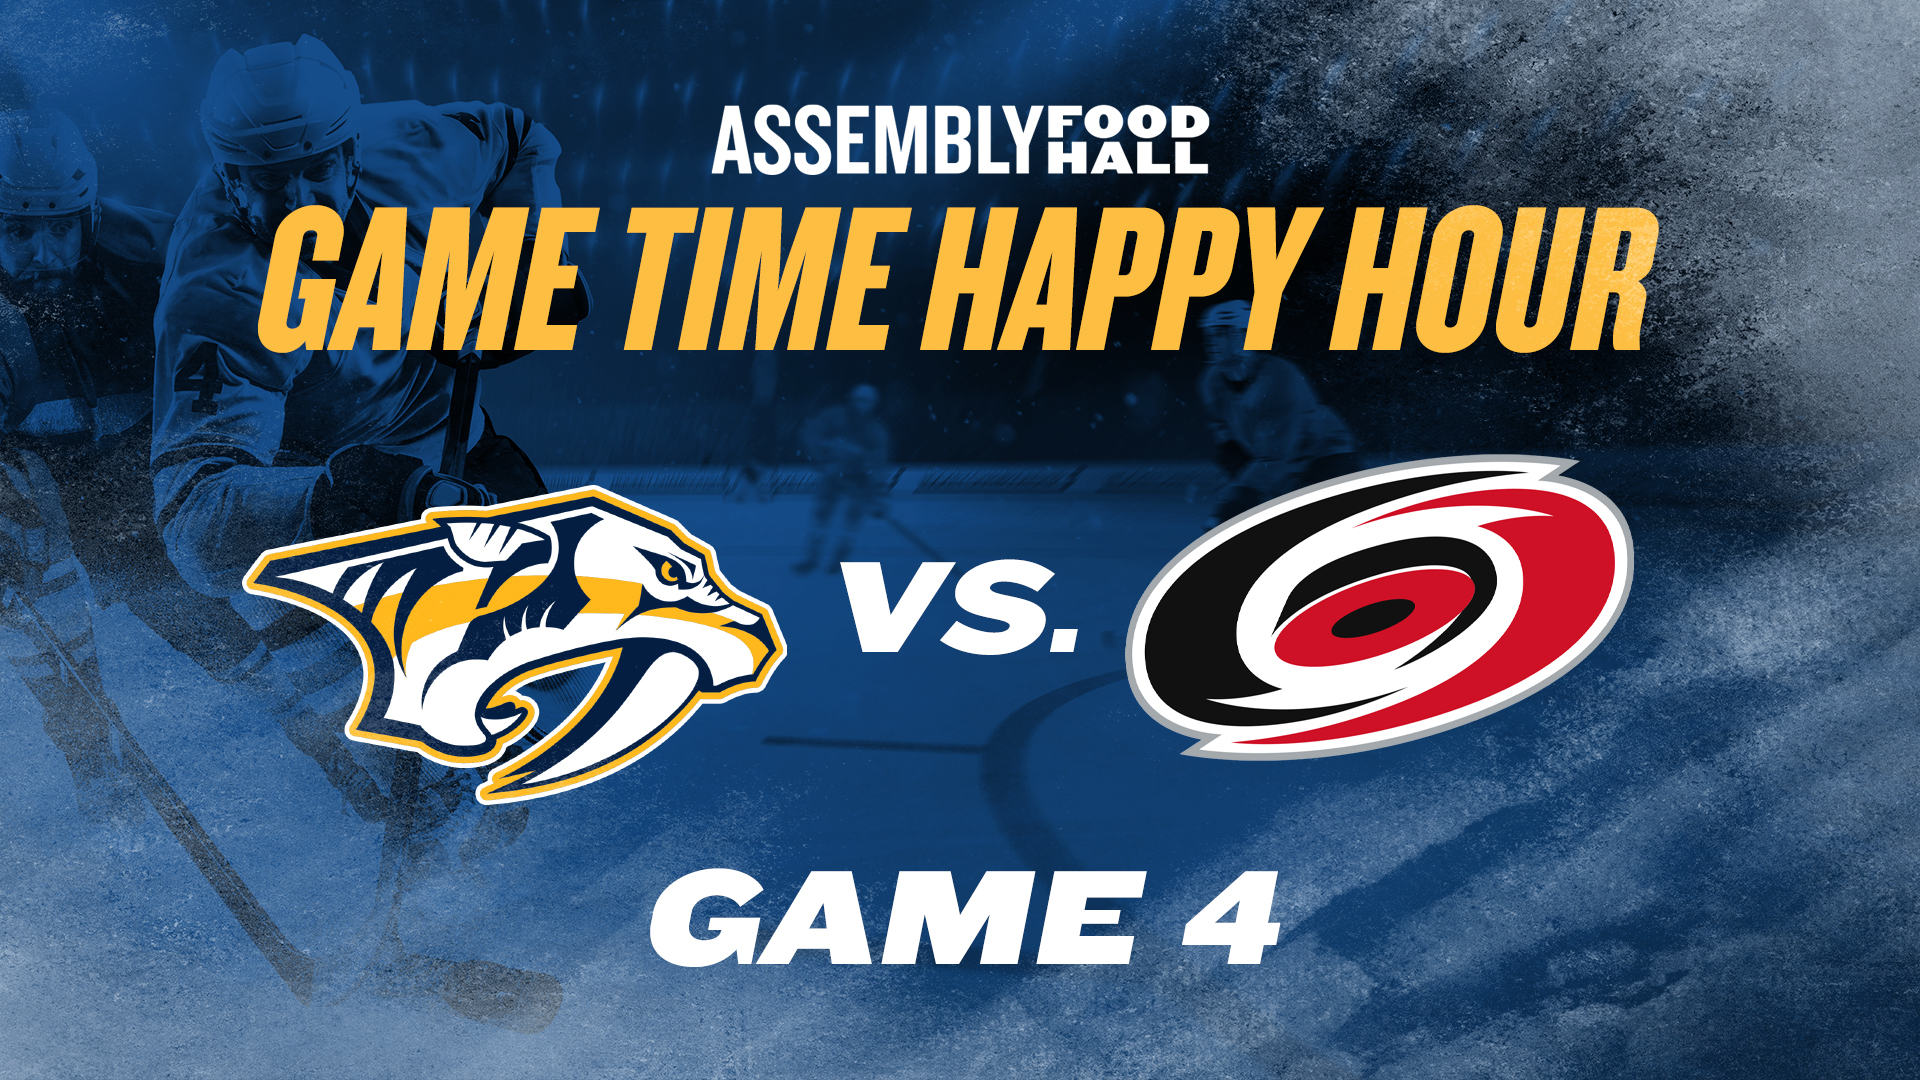 Promo image of Predators v. Hurricanes Game Time Happy Hour | Game 4